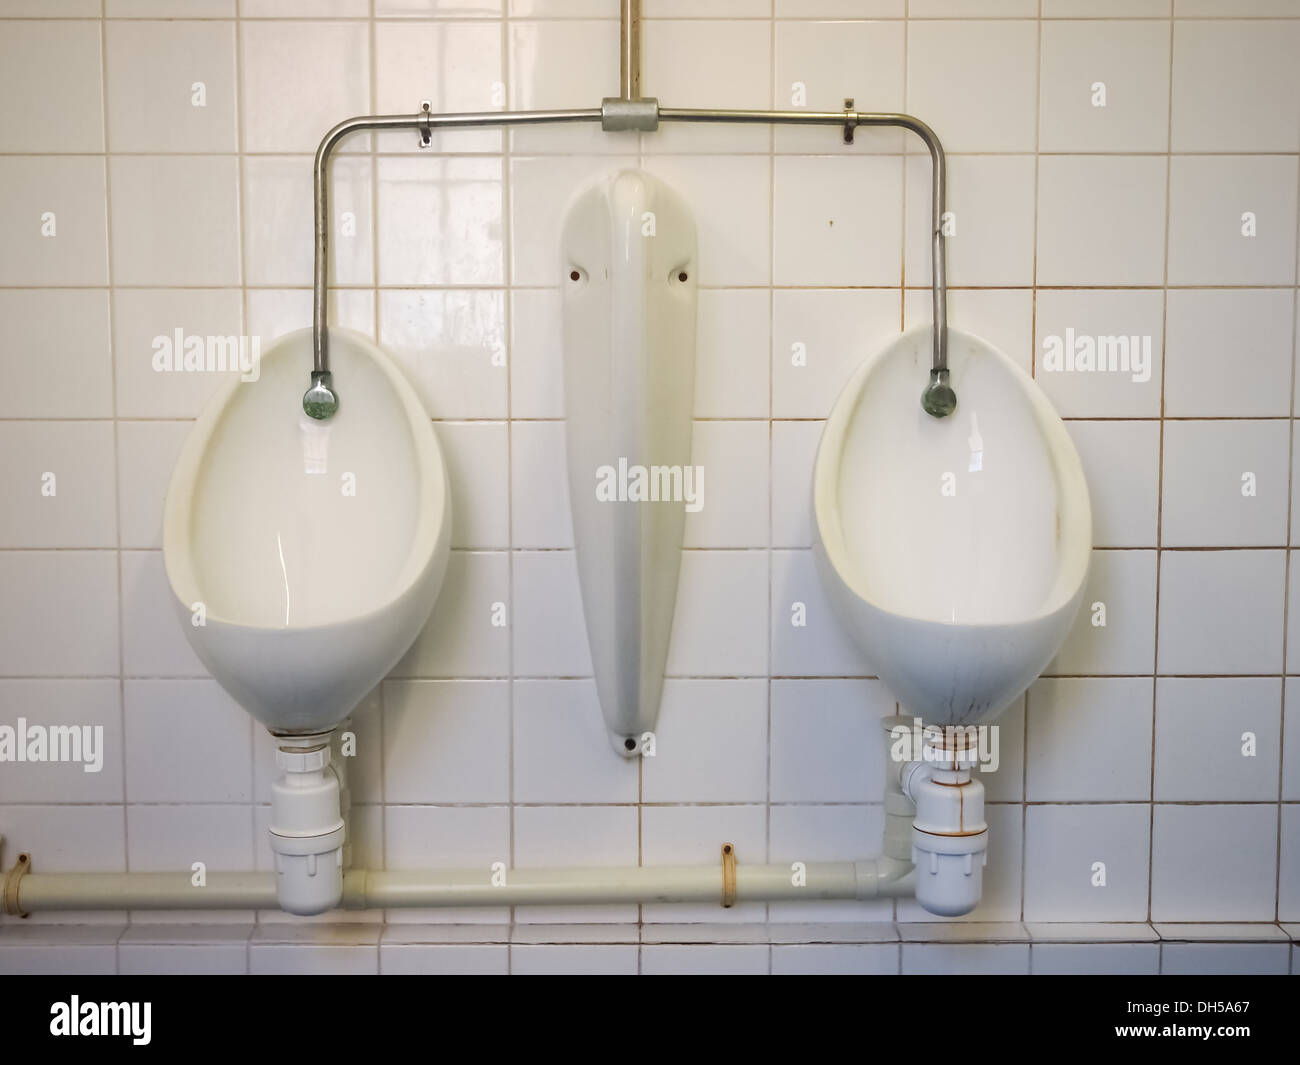 male-urinals-in-a-public-bathroom-with-an-automated-flush-system-DH5A67.jpg